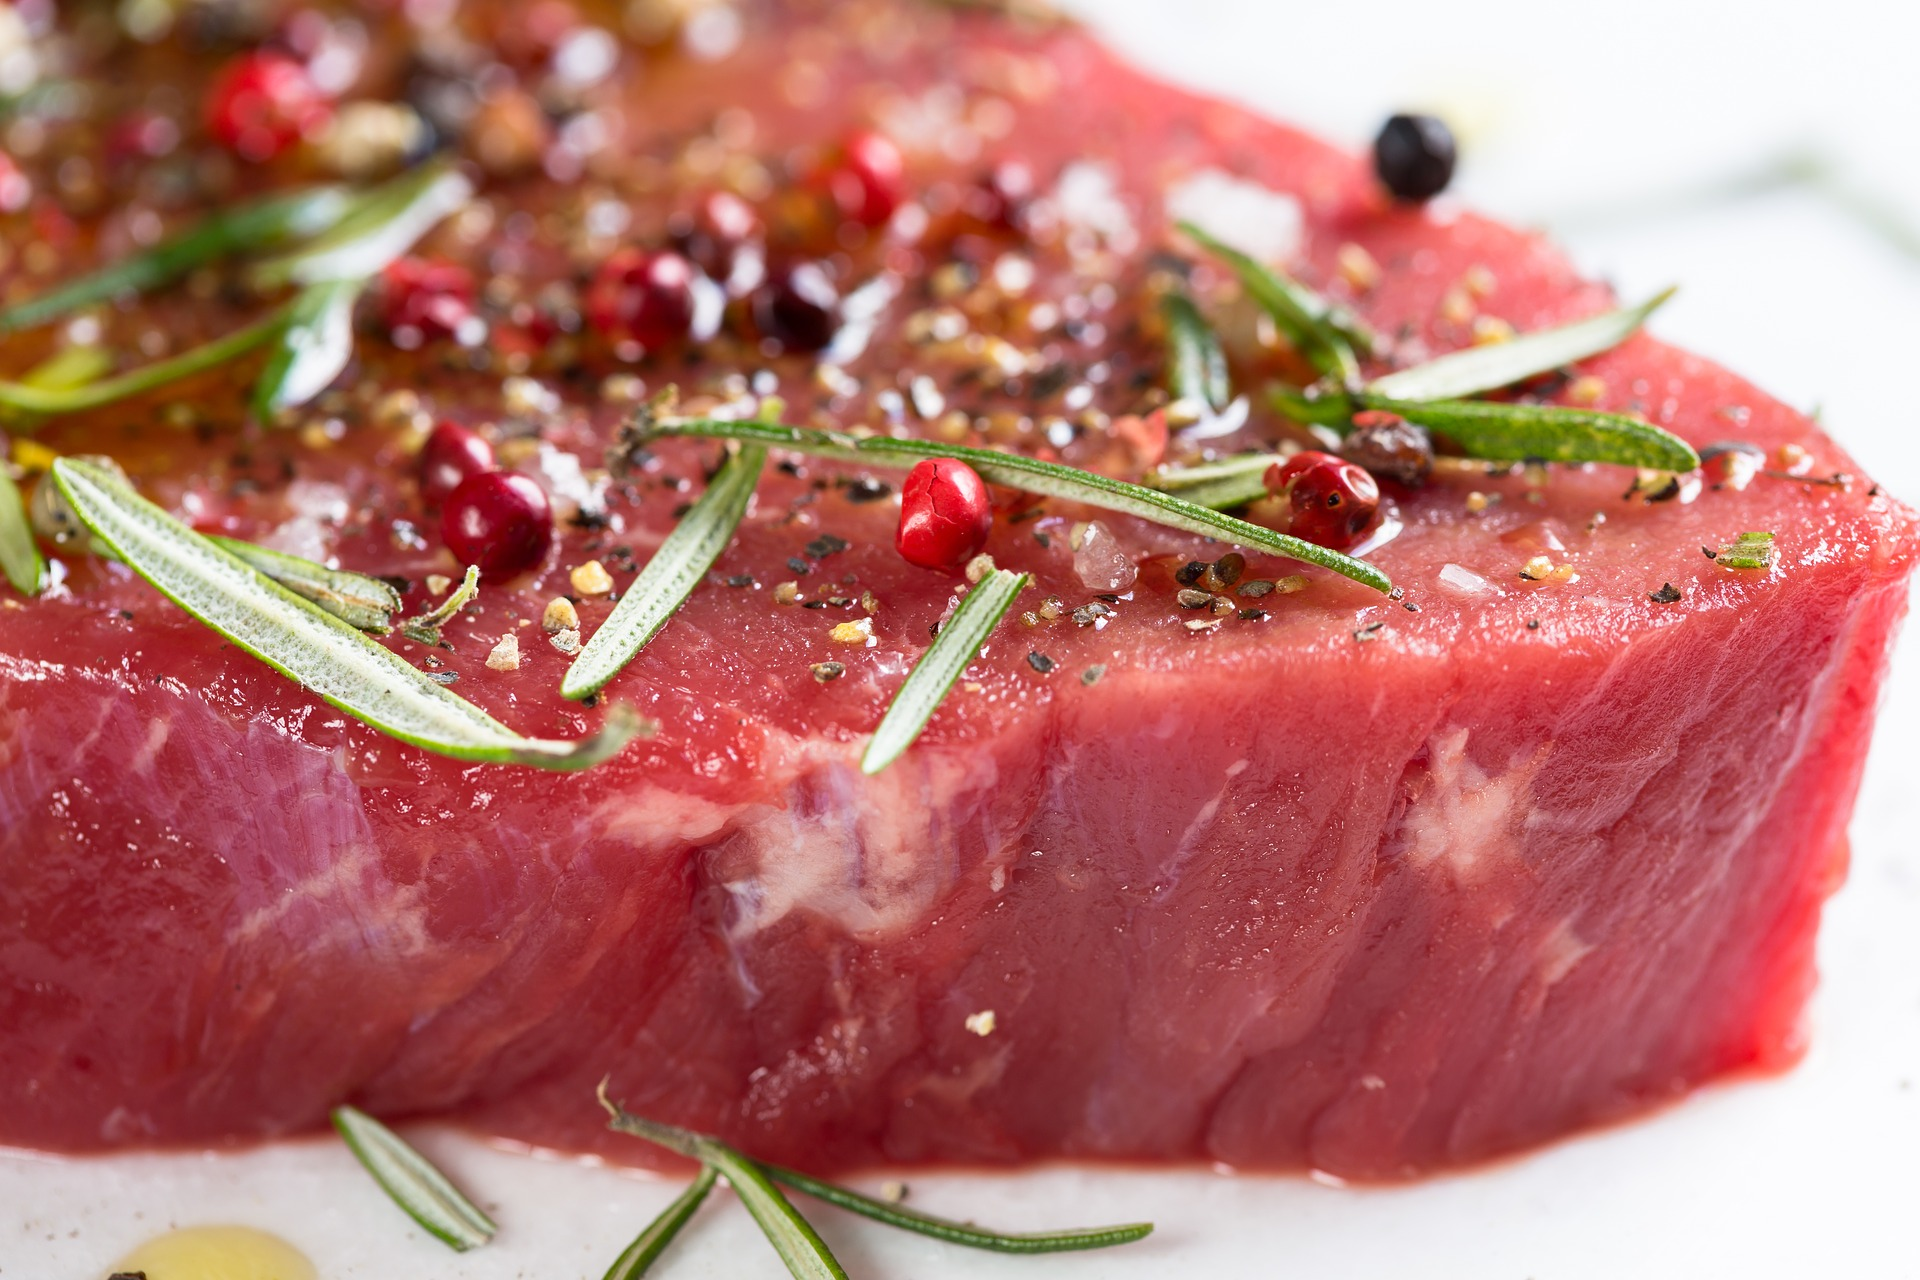 How does red meat affect my gut health?